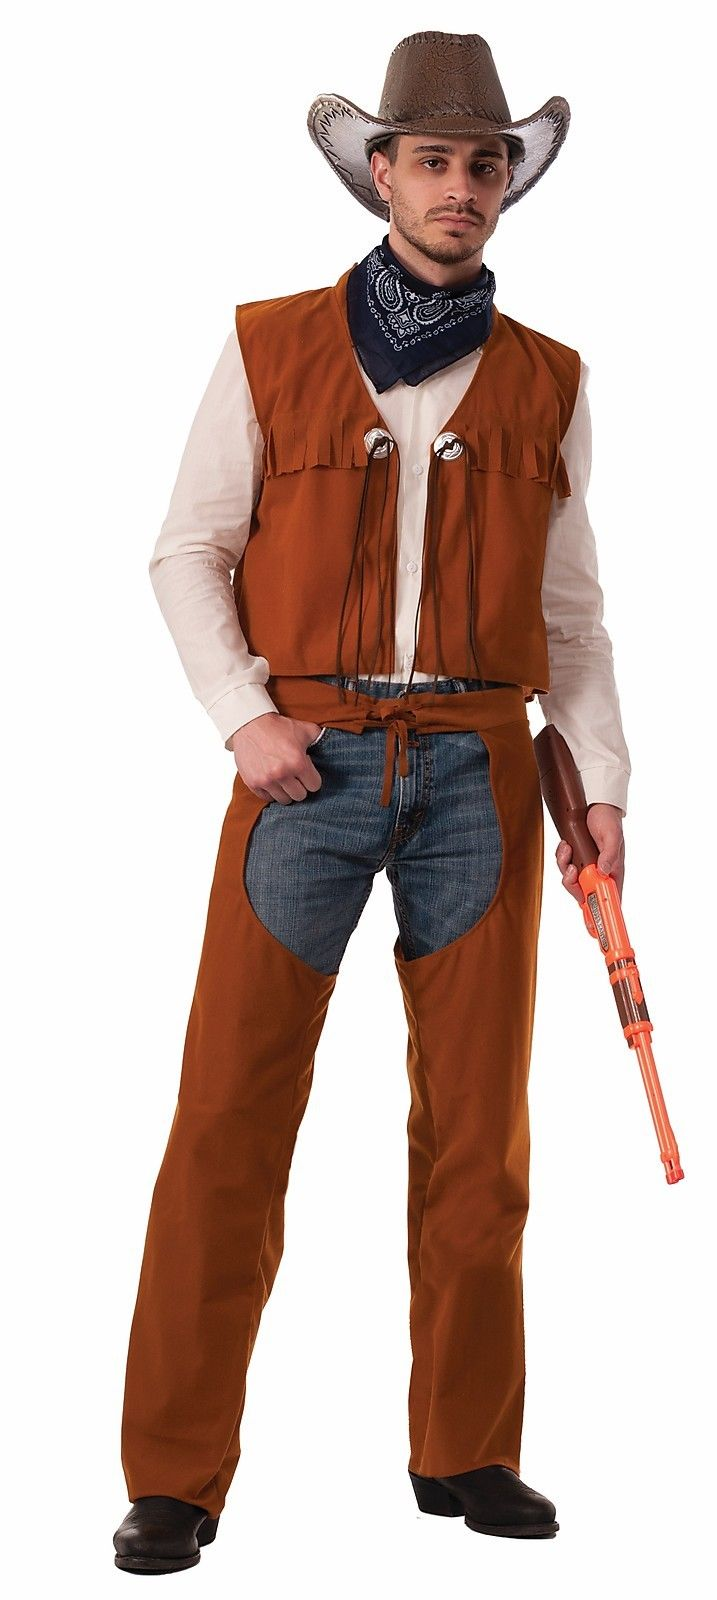 Western Cowboy Sheriff Brown Chaps u0026 Vest Adult Mens Wild West Costume  sc 1 st  eBay & Western Cowboy Sheriff Brown Chaps u0026 Vest Adult Mens Wild West ...